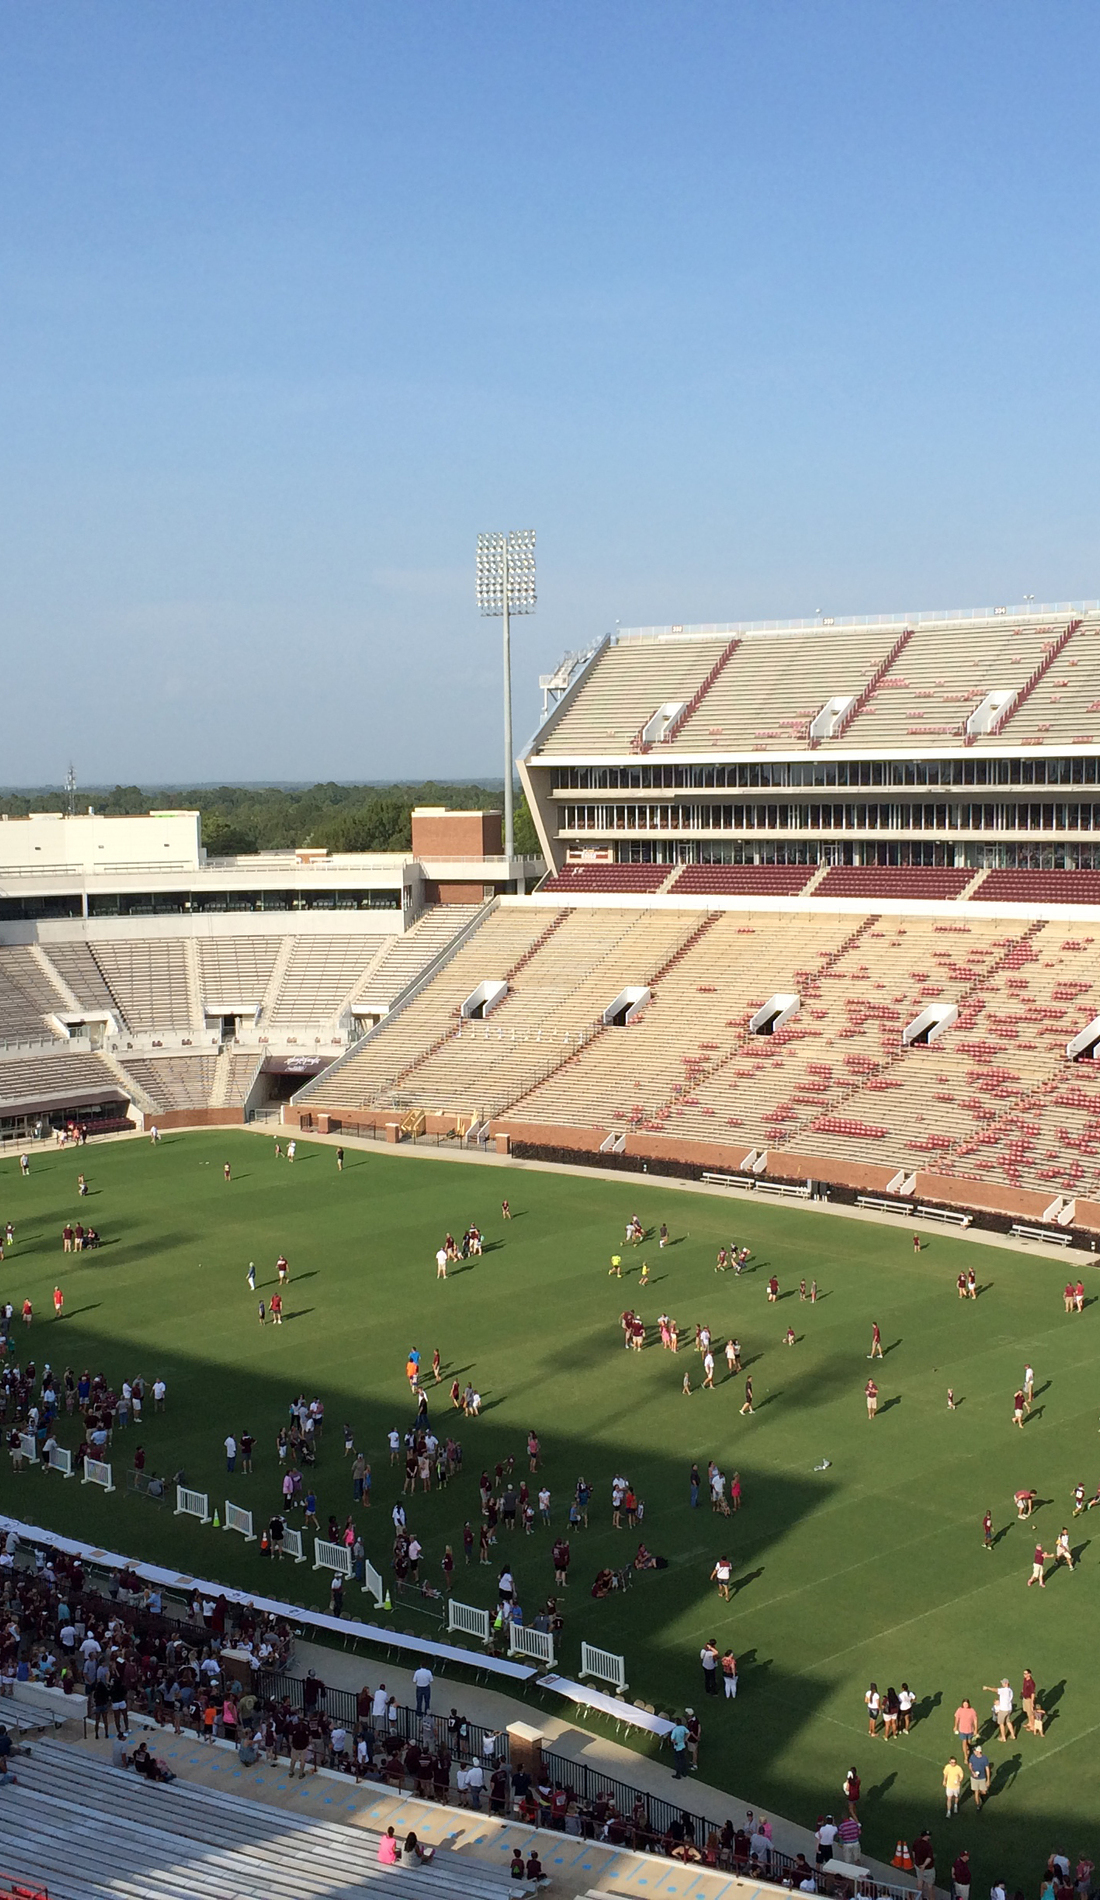 A Mississippi State Bulldogs Football live event